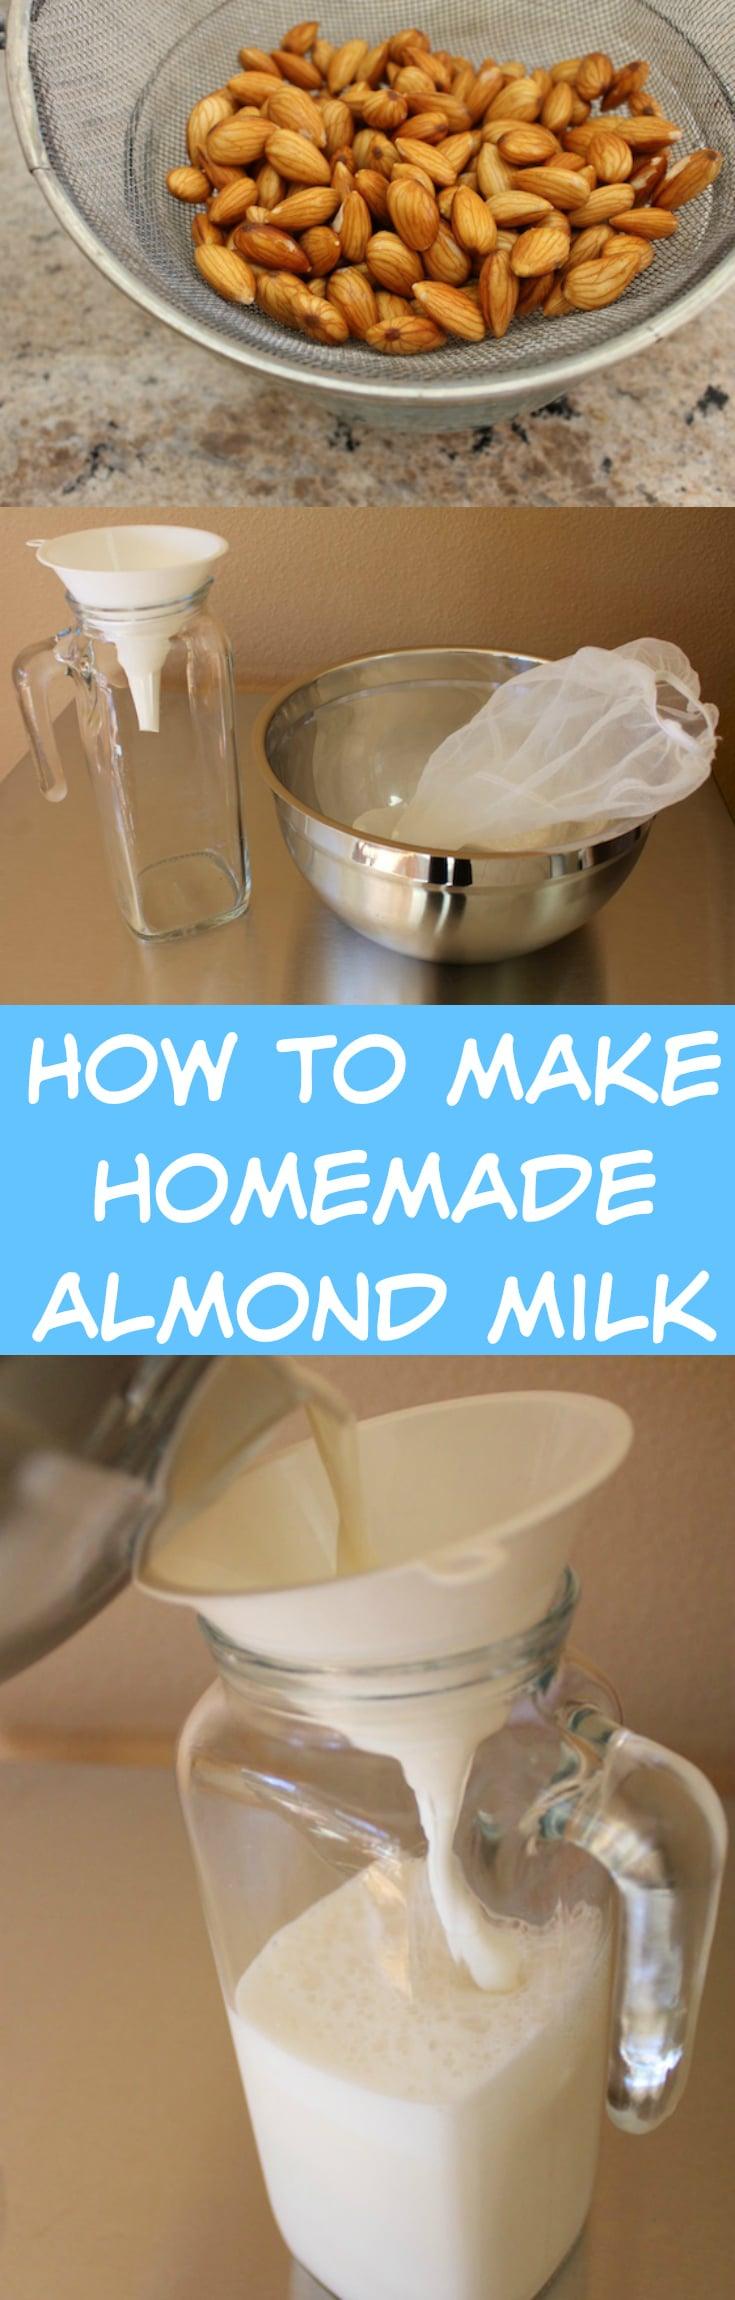 How to make homemade almond milk for a delicious, dairy-free milk alternative with a cost-saving tip!